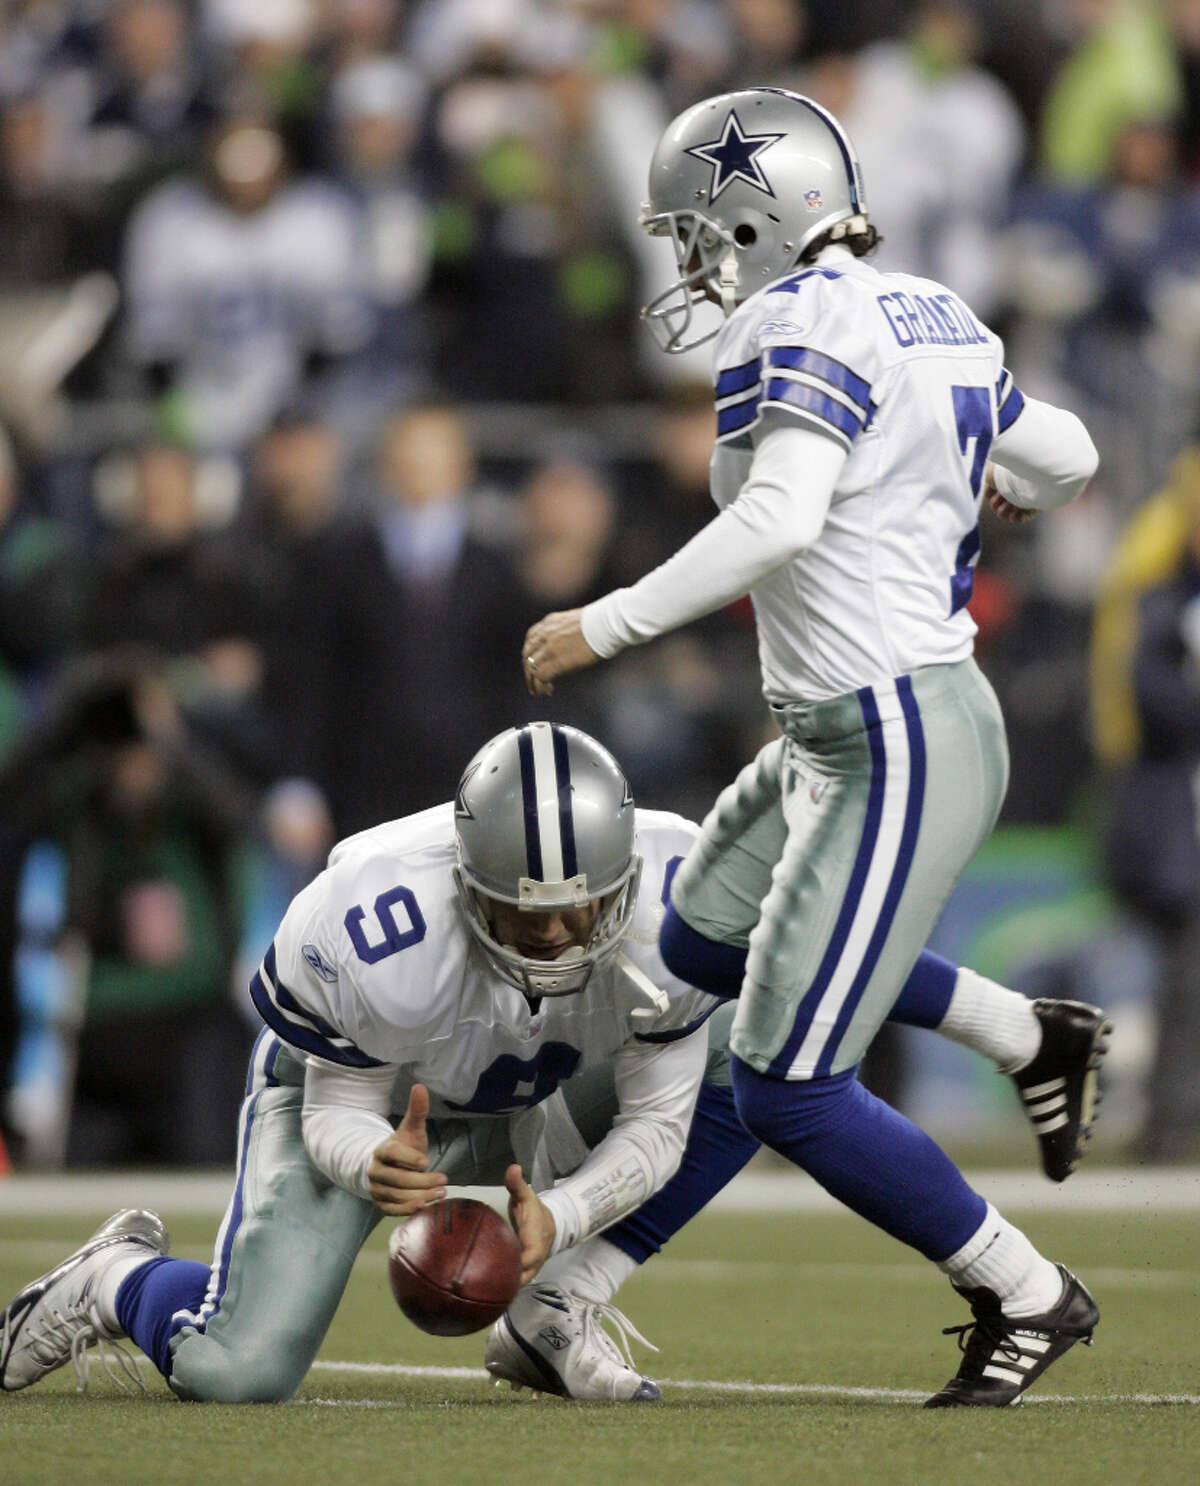 In this Jan. 6, 2007, file photo, Dallas Cowboys' Tony Romo, left, bobbles the snap as kicker Martin Gramatica steps in for the kick with 1:19 left in the game against Seattle Seahawks in an NFC wild card playoff football in Seattle. Romo attempted to run the ball but fumbled as he was hit. The Seahawks won 21-20.